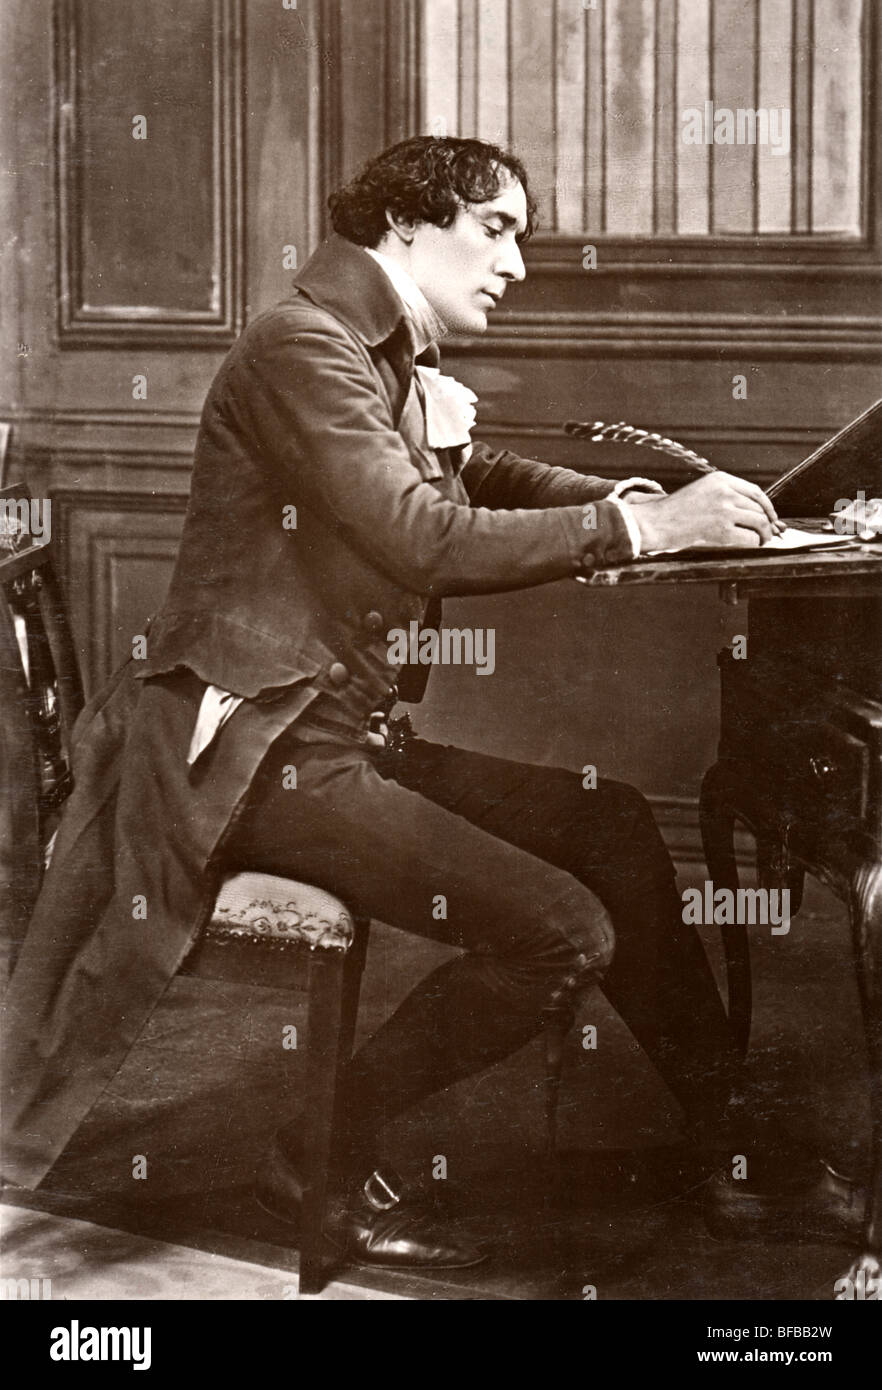 H B Irving Writing With Quill Pen At 19th Century Desk